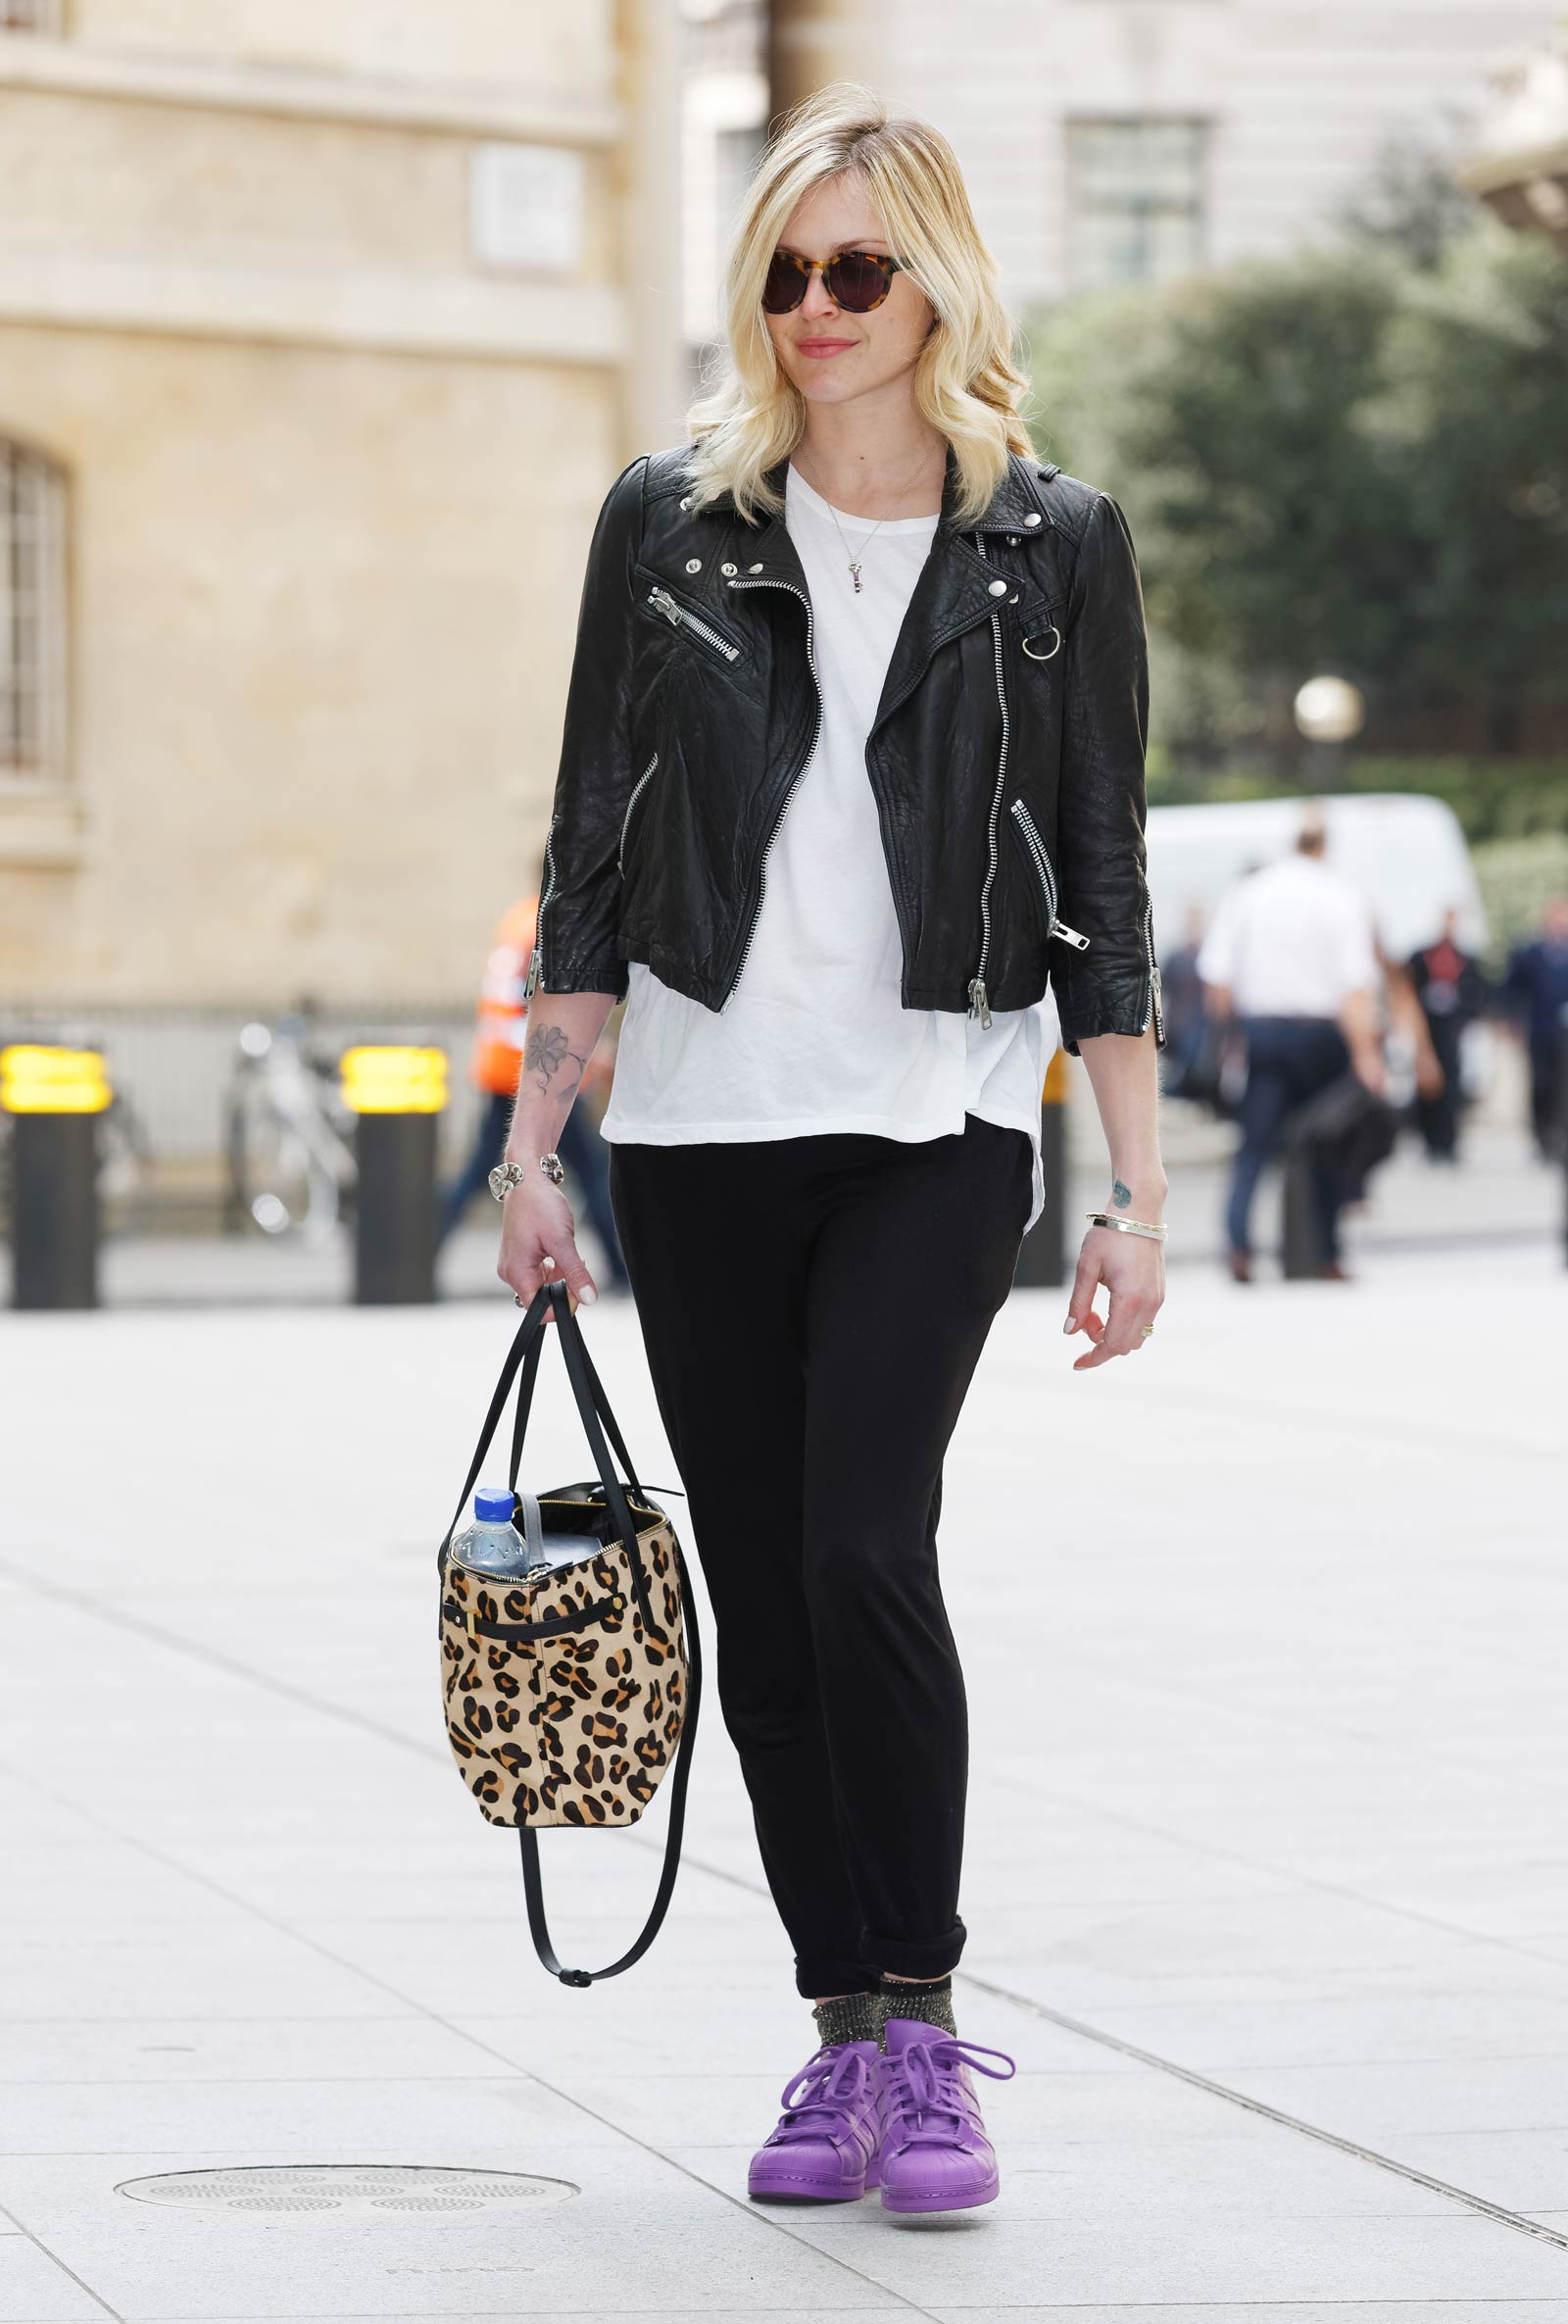 Fearne Cotton seen arriving at BBC Radio 1